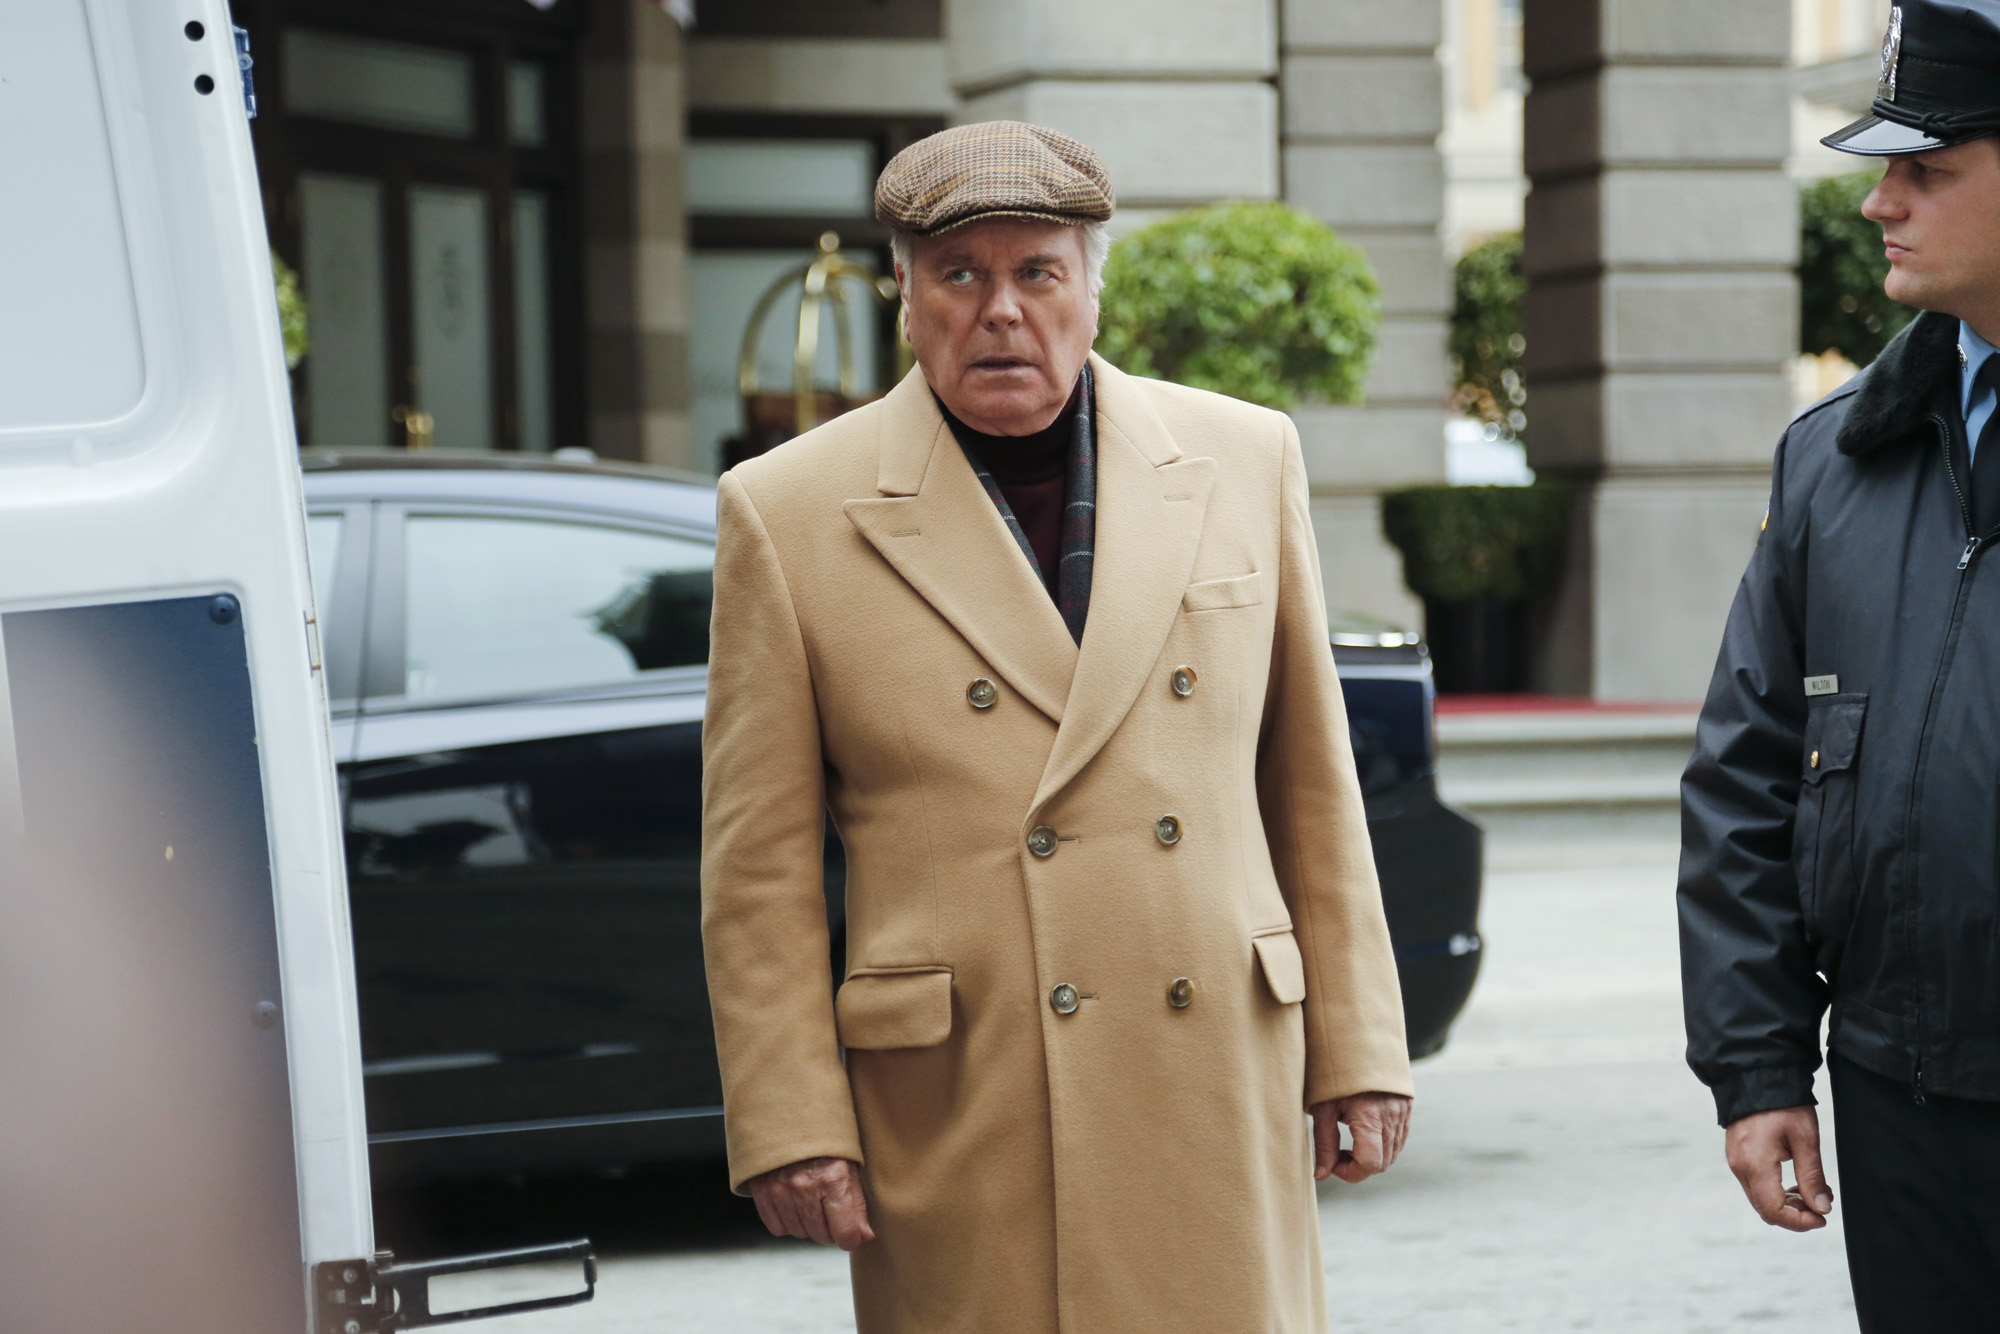 DiNozzo's Father Stunned in